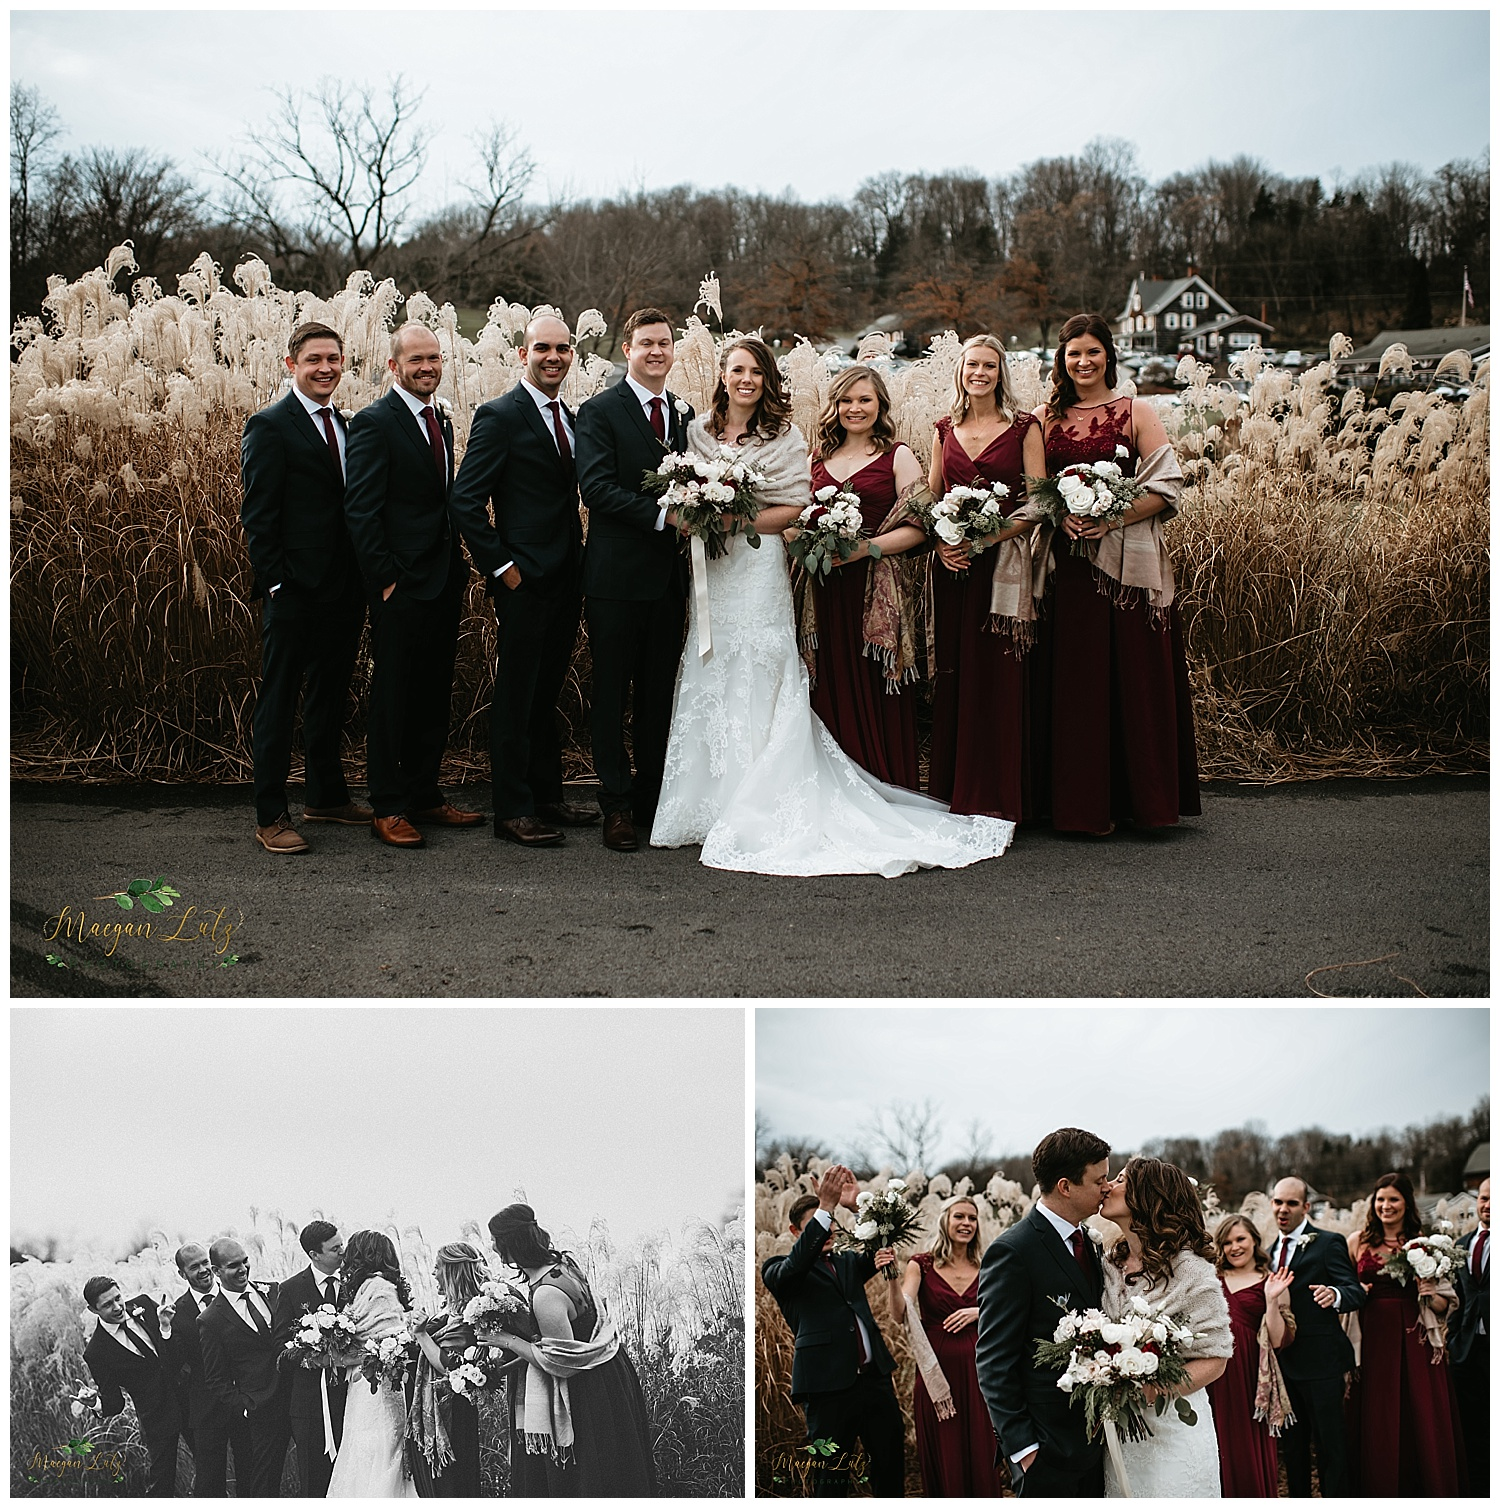 NEPA-wedding-photographer-at-Farmstead-Golf-and-country-club-LaFayette-Township-New-Jersey_0036.jpg